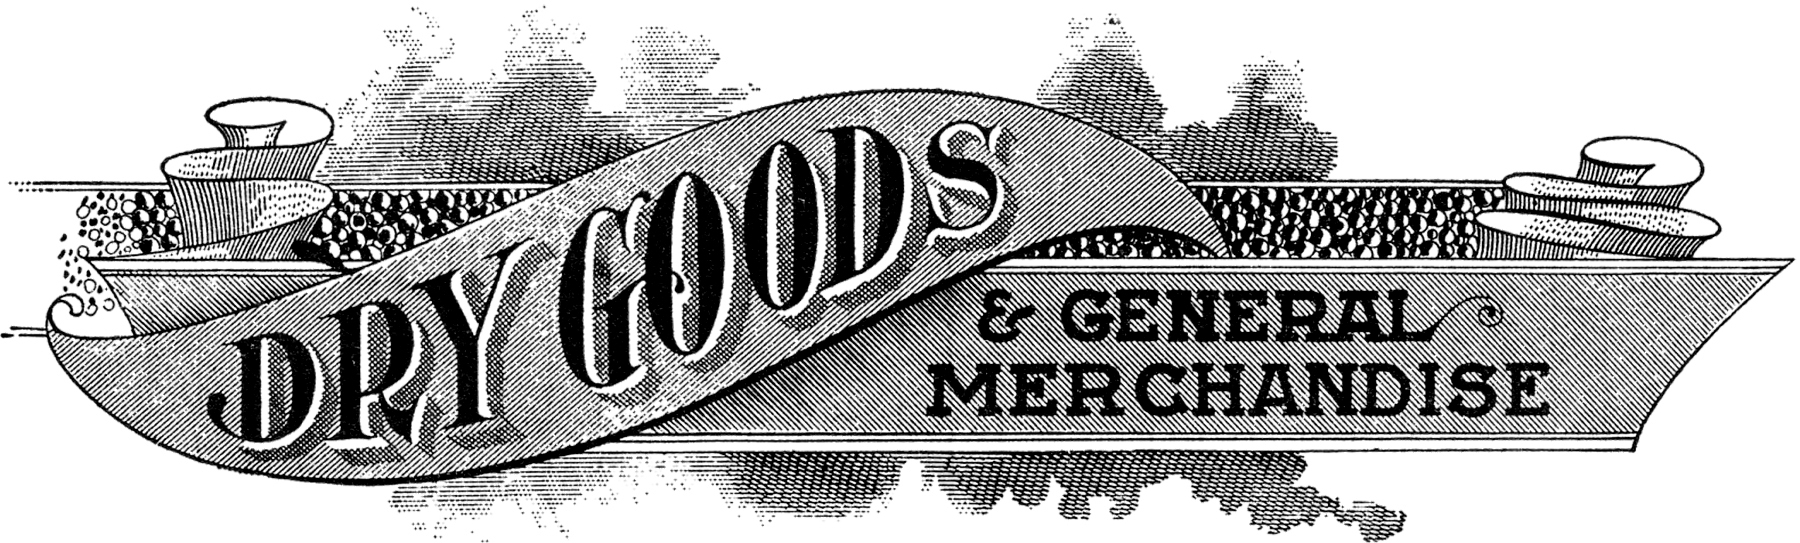 Vintage clipart sign. Antique dry goods trade